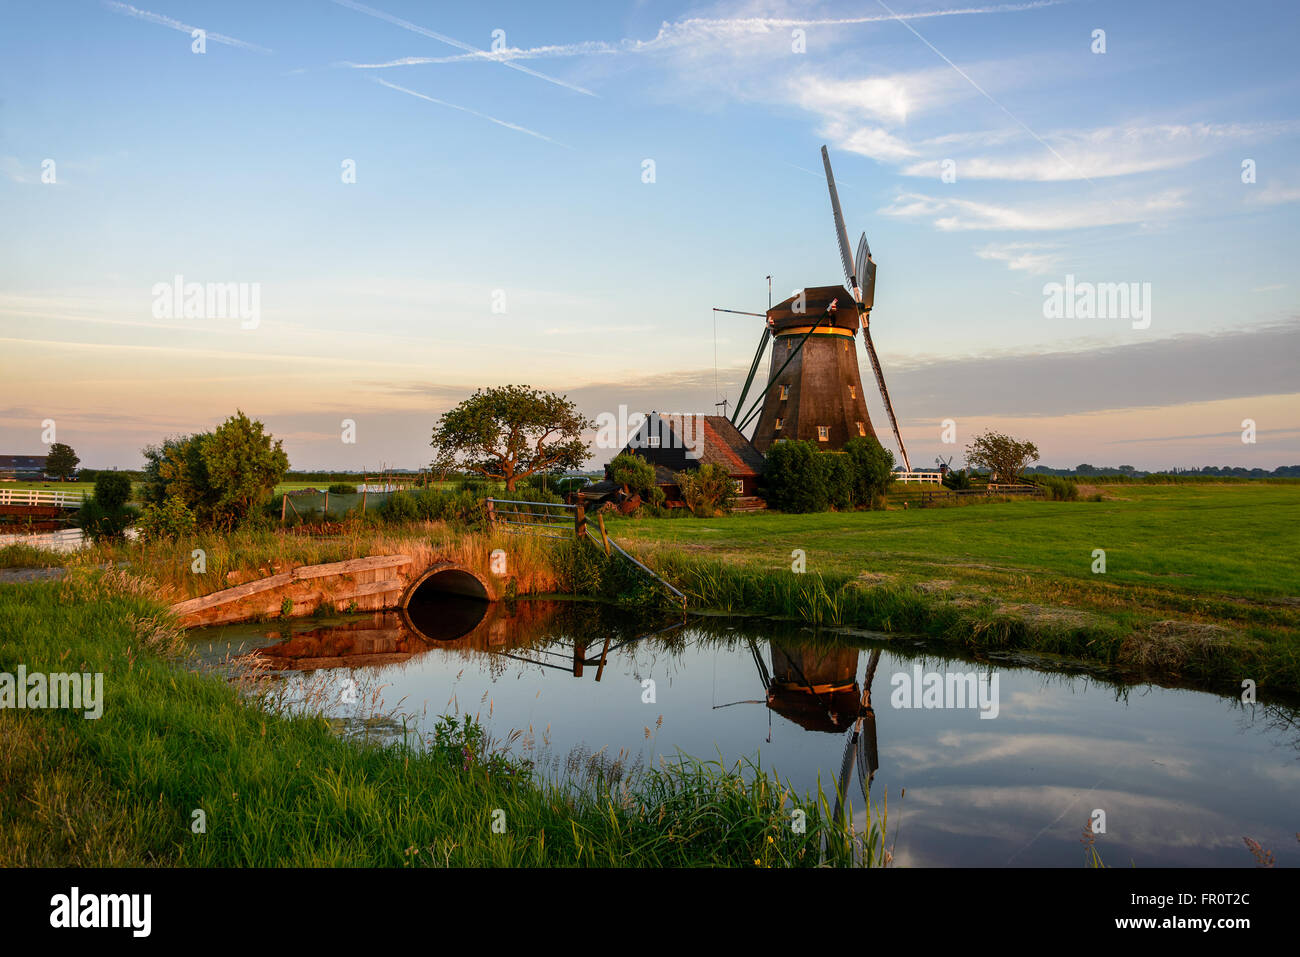 Windmill next to a canal with a bridge in an agricultural area in the countryside in Holland at sunset in Aarlanderveen. - Stock Image